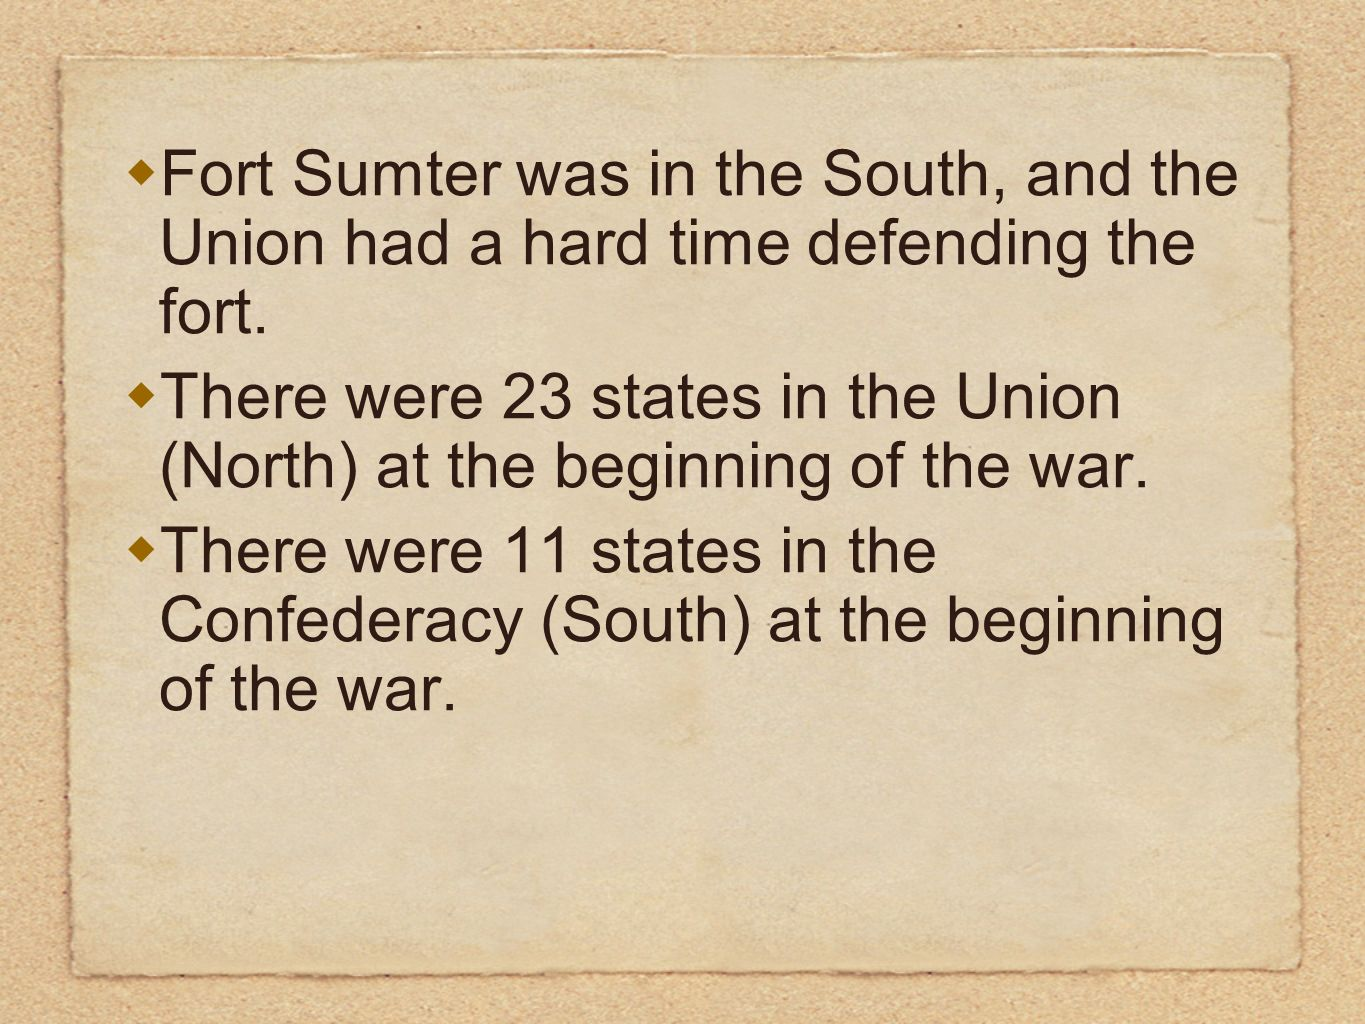 Fort Sumter was in the South, and the Union had a hard time defending the fort.